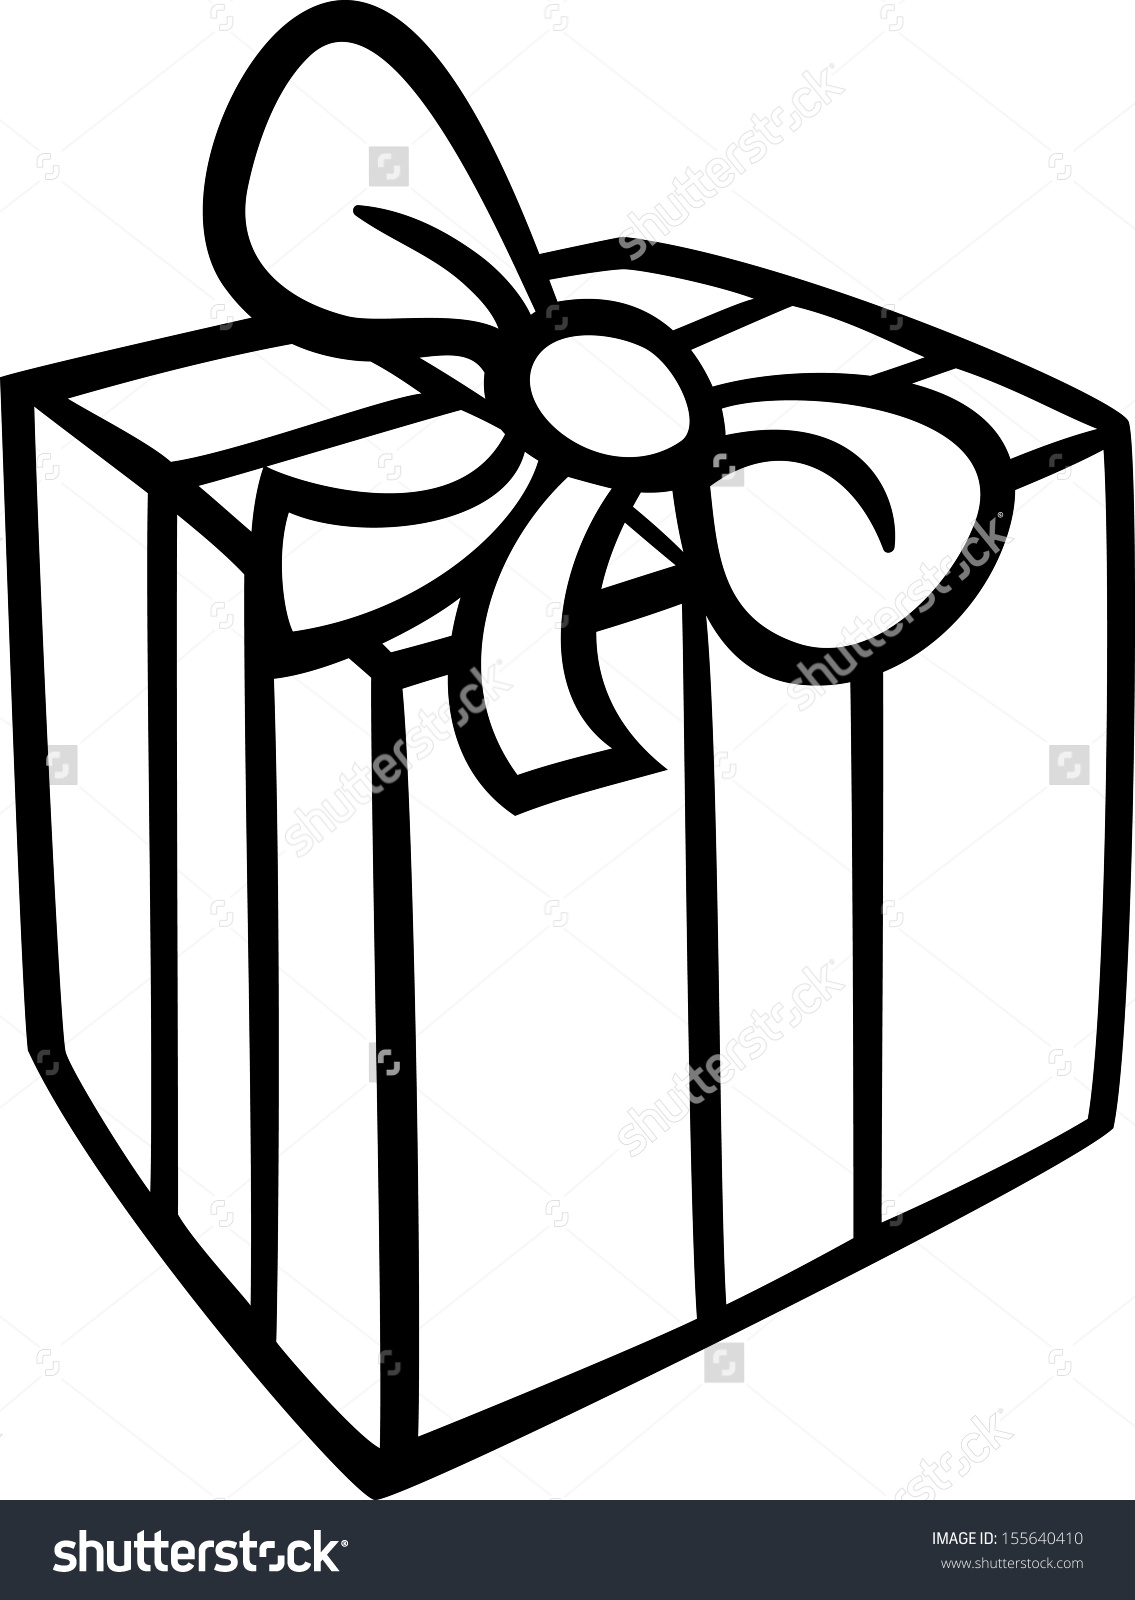 1135x1600 Gift Clipart Black And White